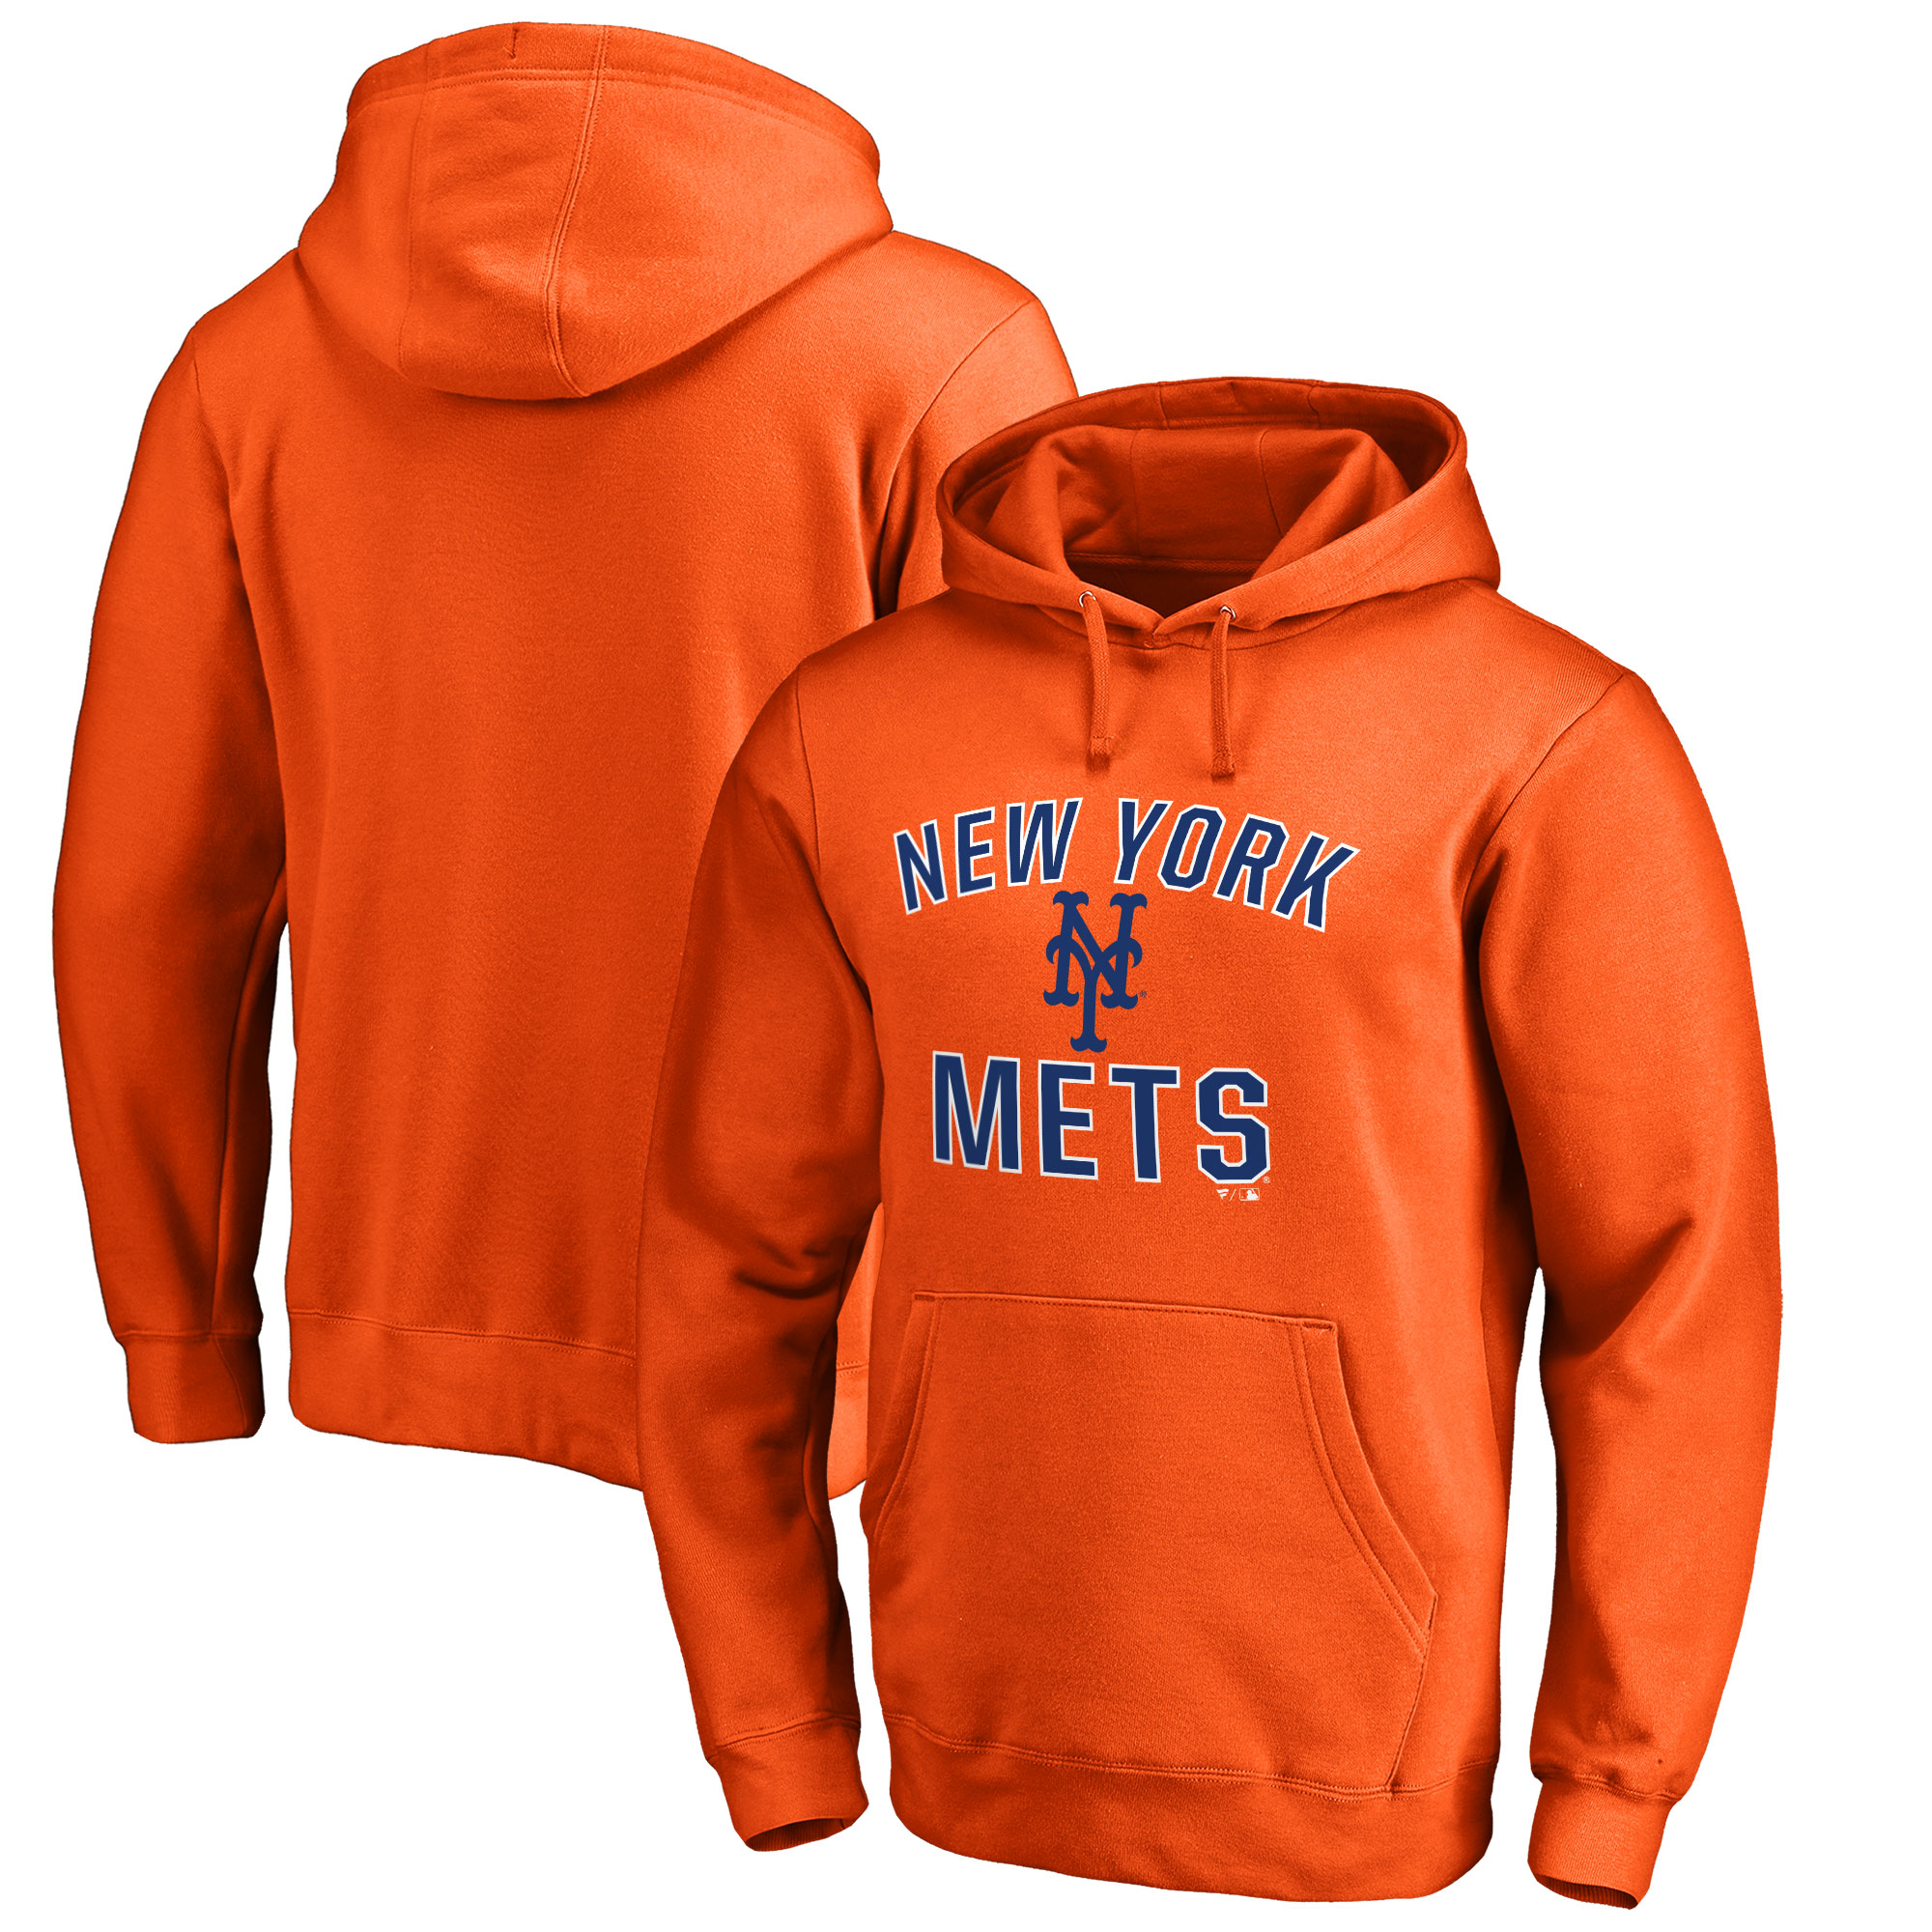 Men's Orange New York Mets Victory Arch Pullover Hoodie